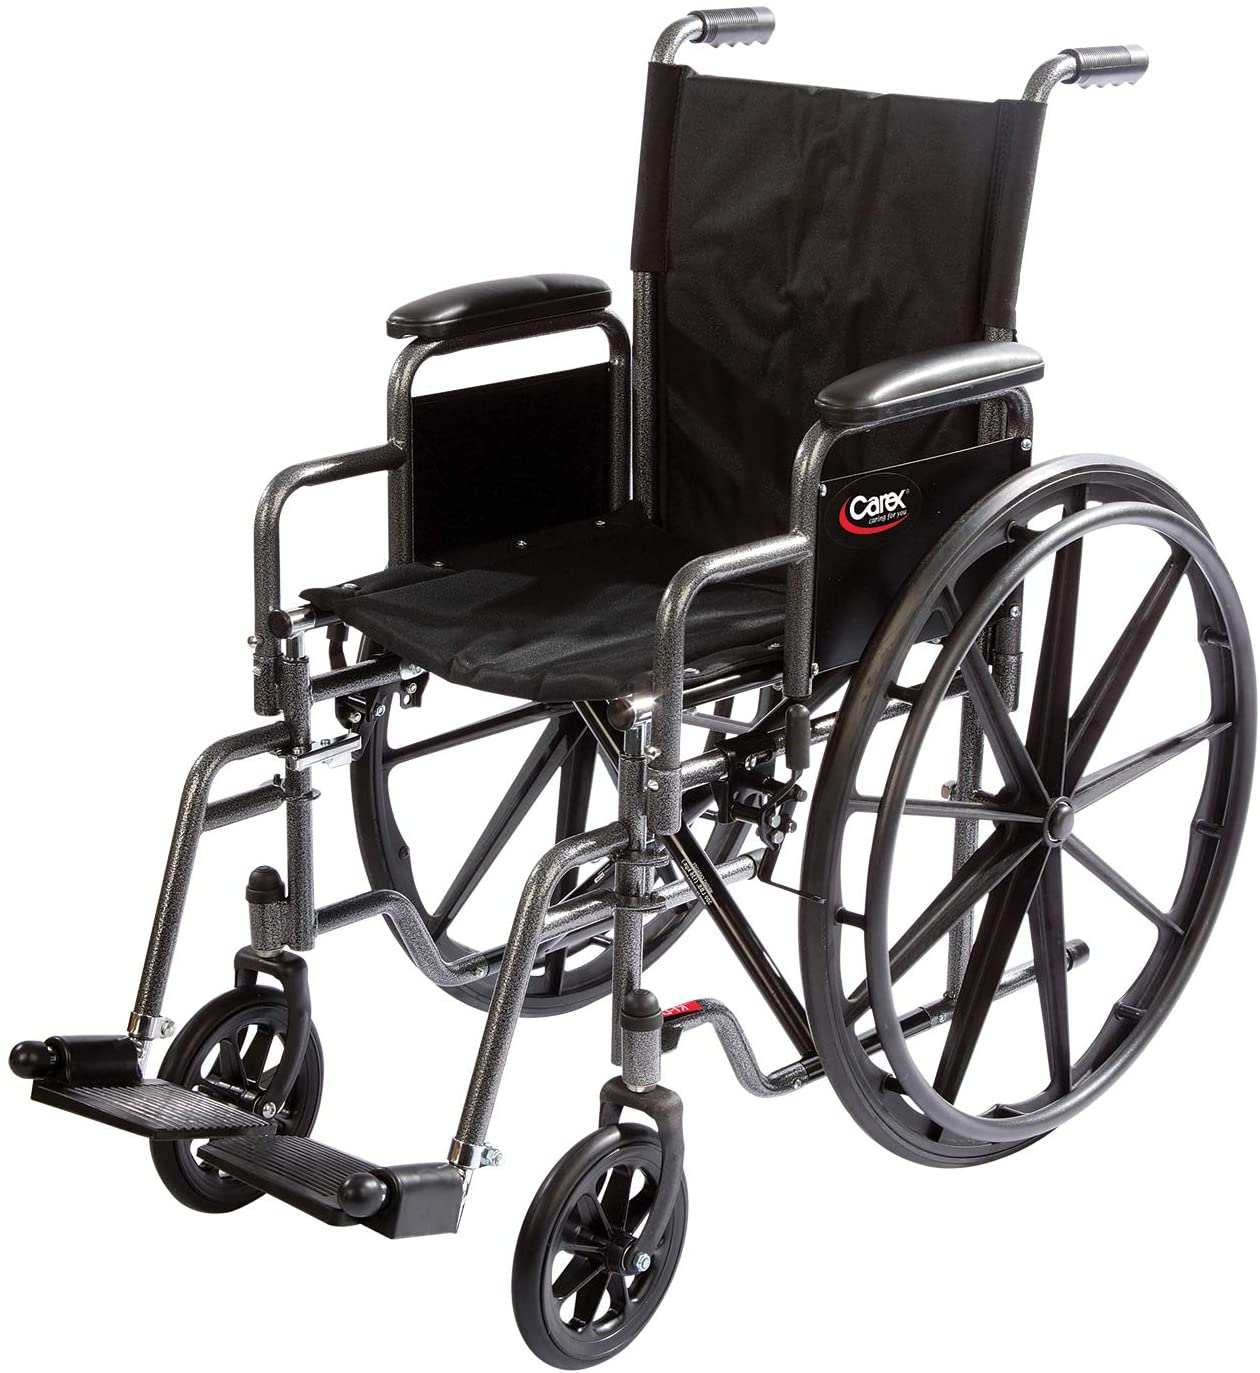 Carex Wheelchair with Large 18 Padded Seat - Wheel Chair with Adjustable and Removable Swing-Away Footrests - Folding Chair for Compact Storage, 250lb Capacity, Black 71bmP5NkwPLSL1500_